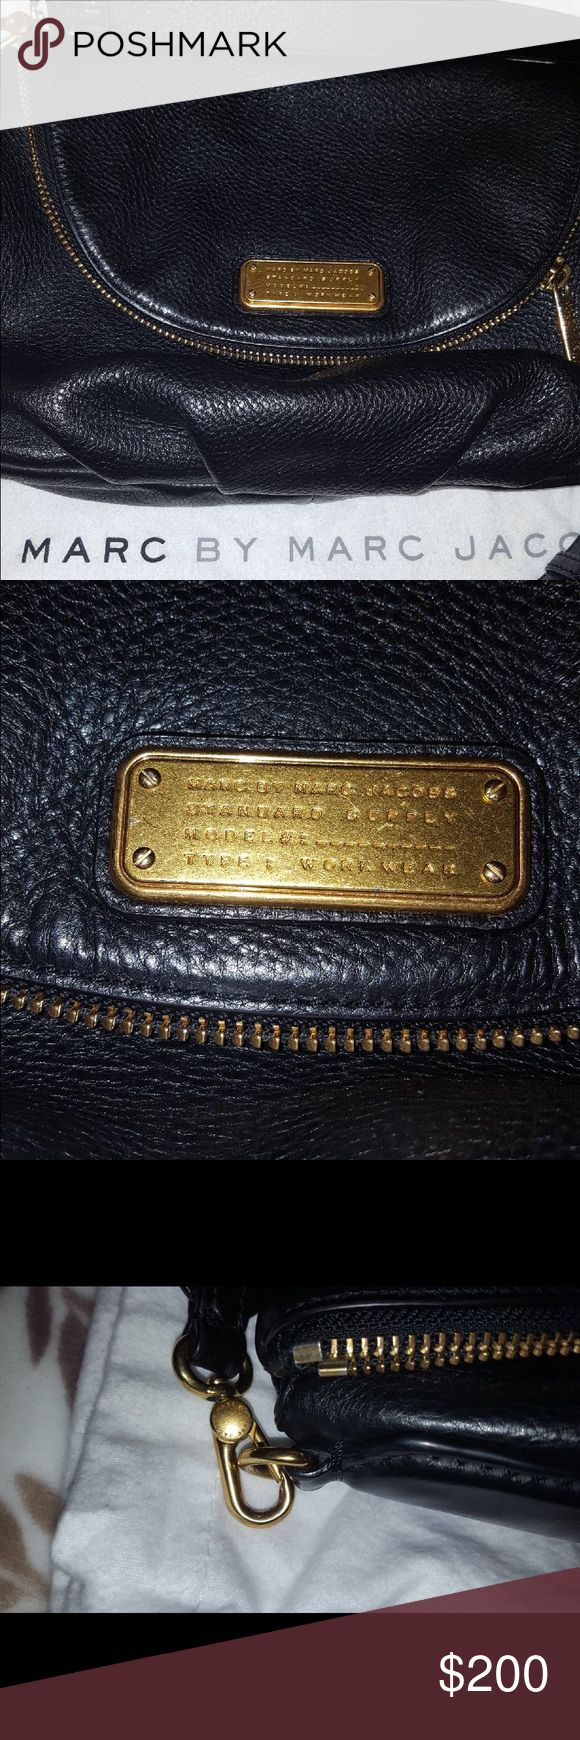 Marc by Marc Jacob Natasha Crossbody Marc by Marc Jacob Natasha Crossbody. Classic beautiful leather crossbody. Still in top condition. This is the large crossbody. Bags Crossbody Bags